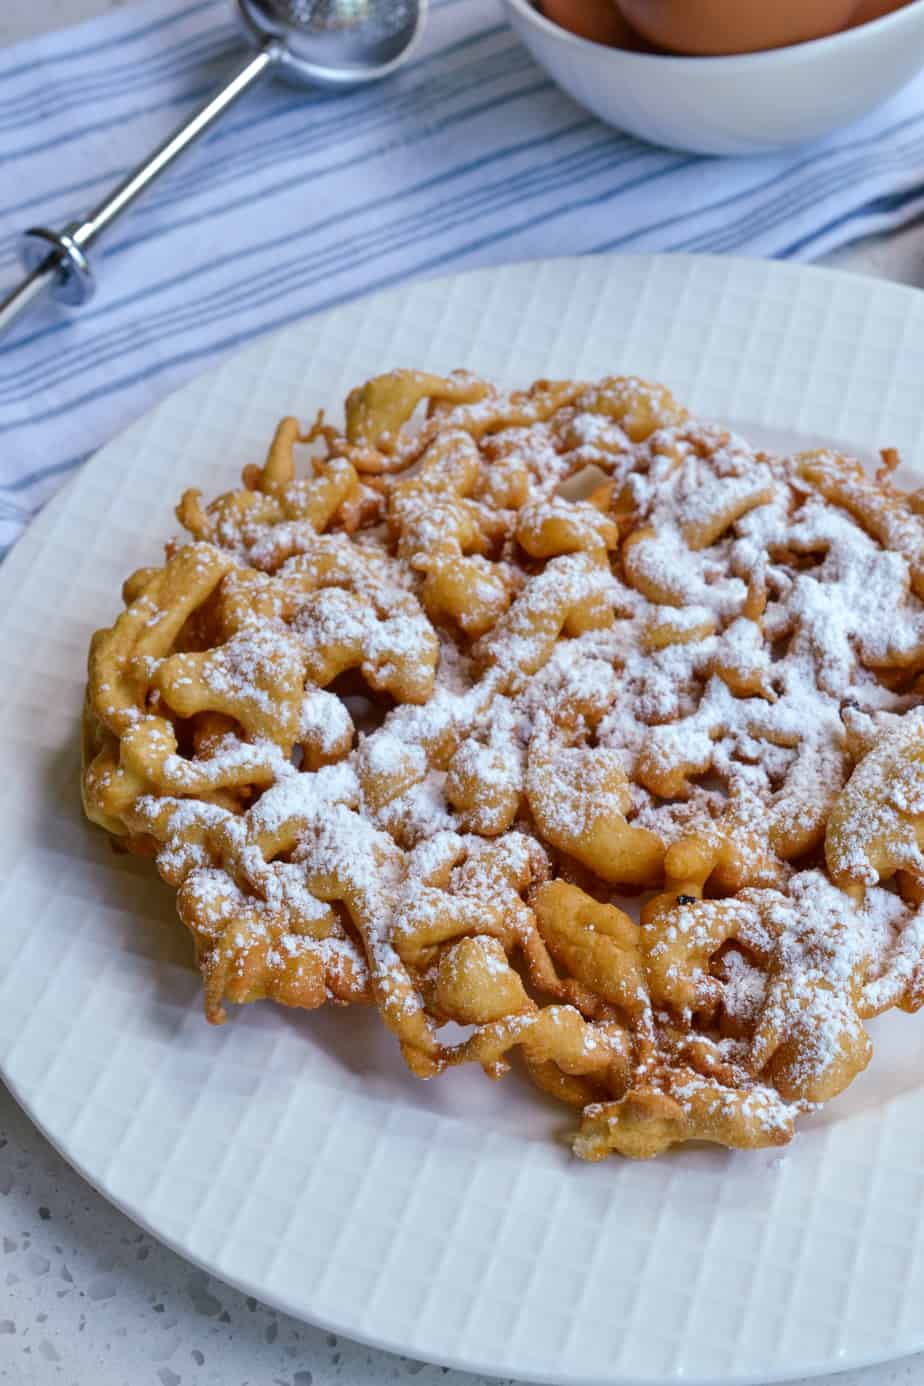 Funnel cake with powdered sugar.